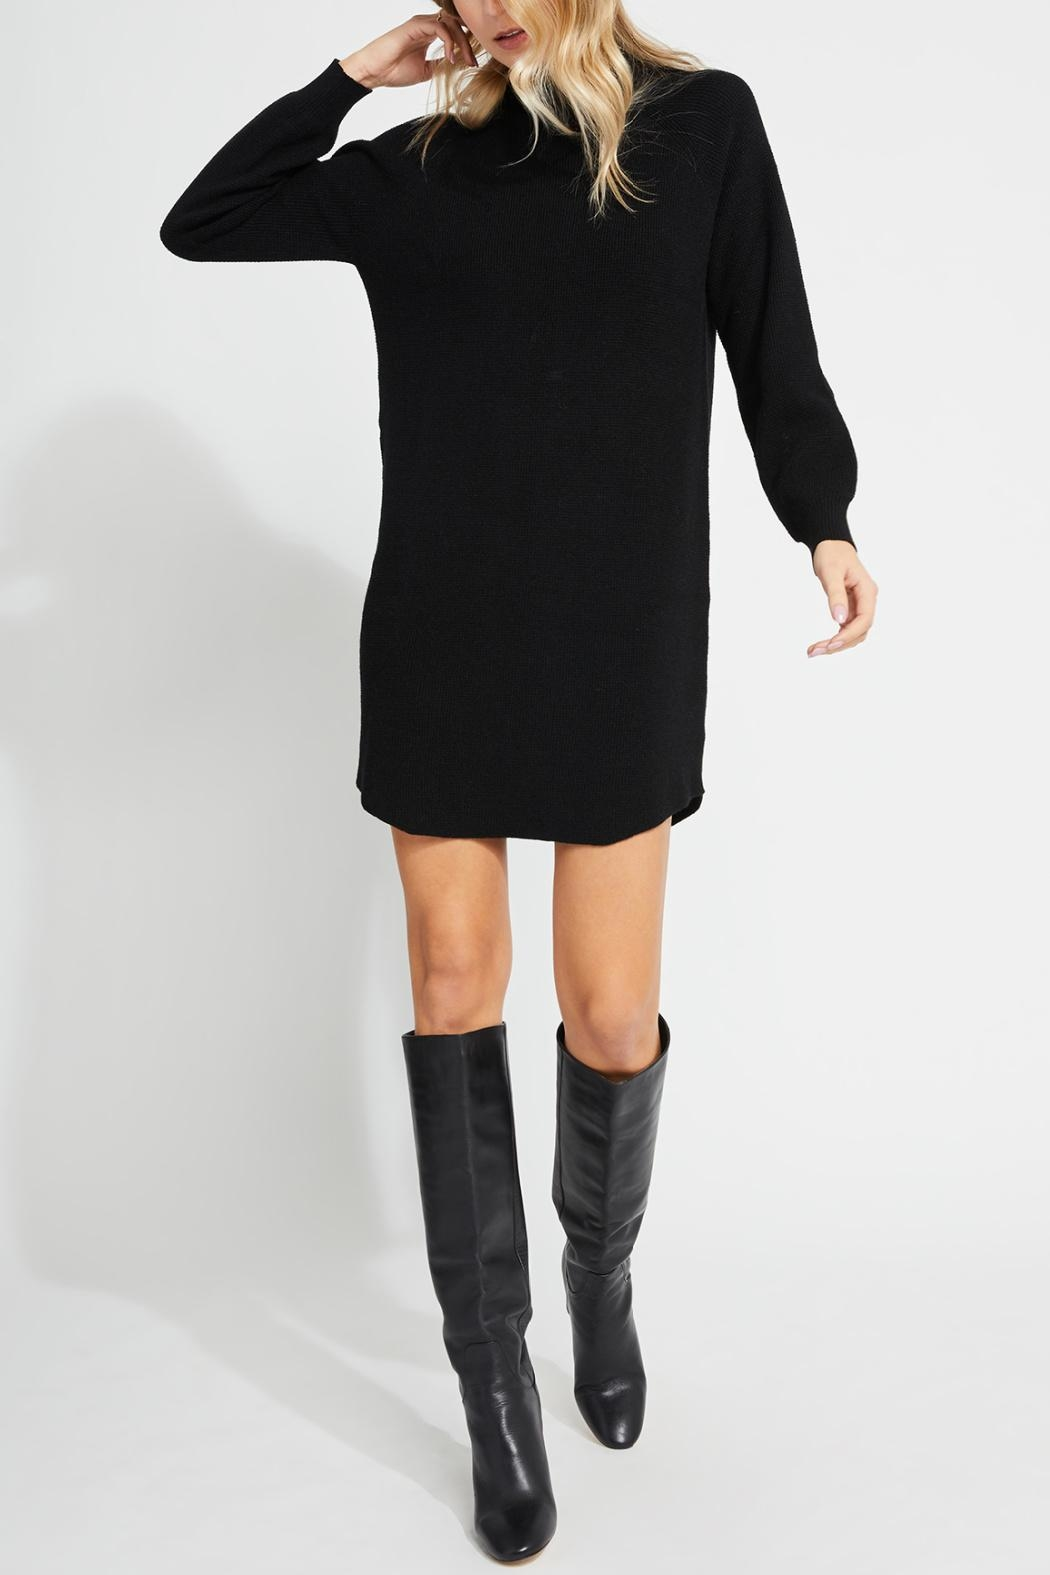 Gentle Fawn Mid-Thigh Sweater Dress - Main Image